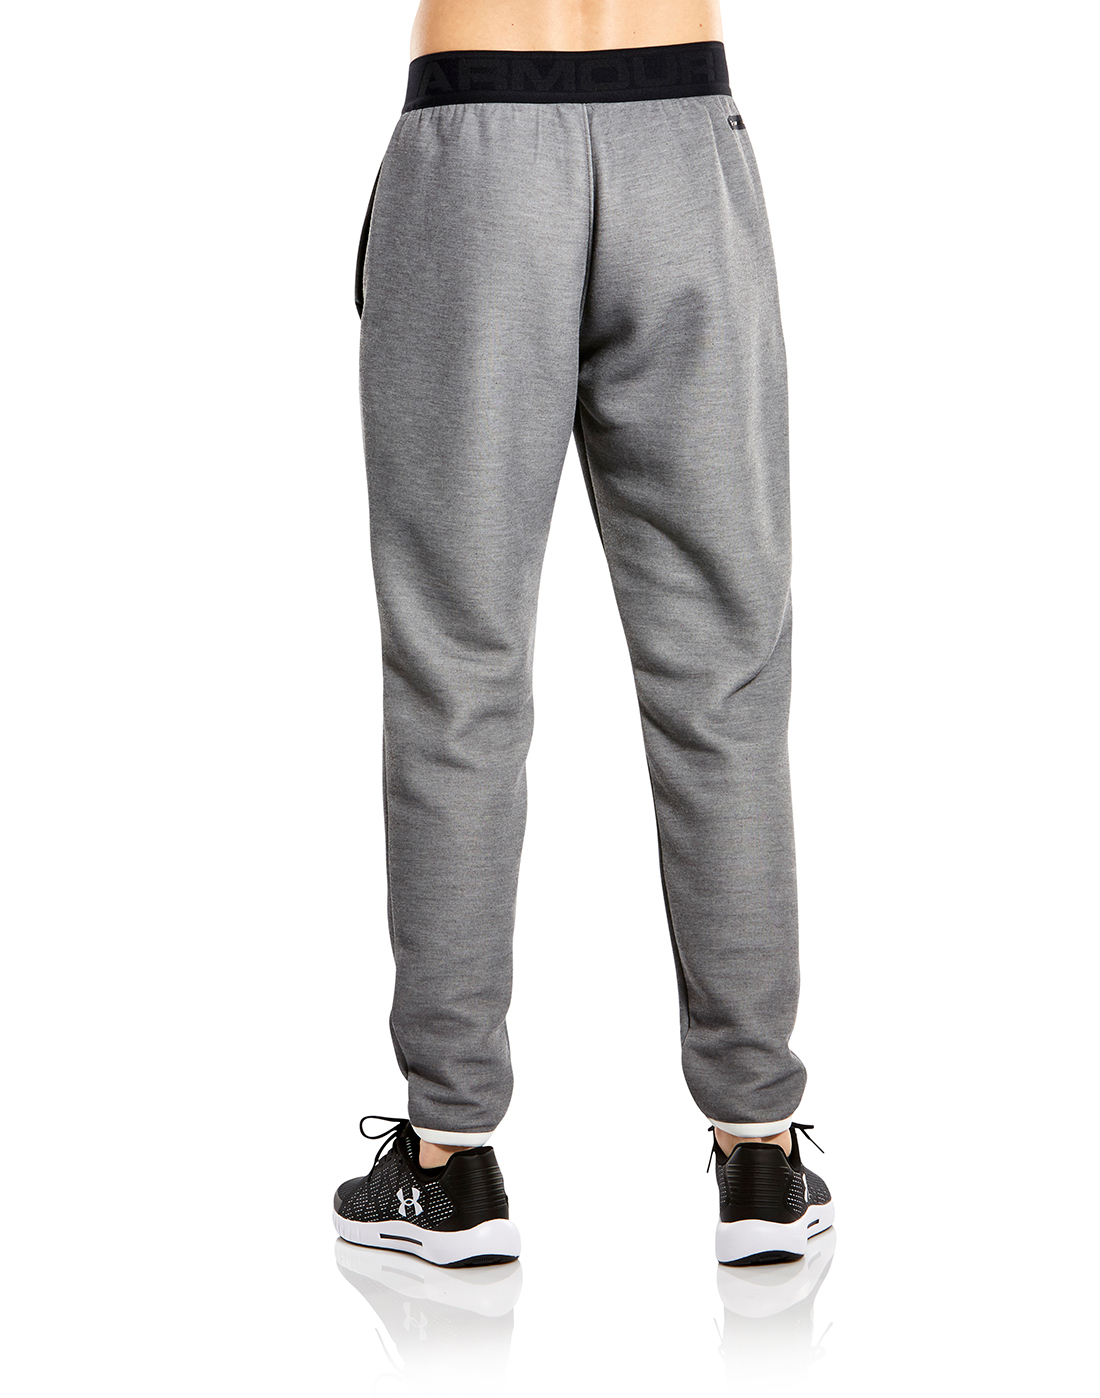 e917a0fb6b Men's Grey Under Armour Gym Joggers | Life Style Sports